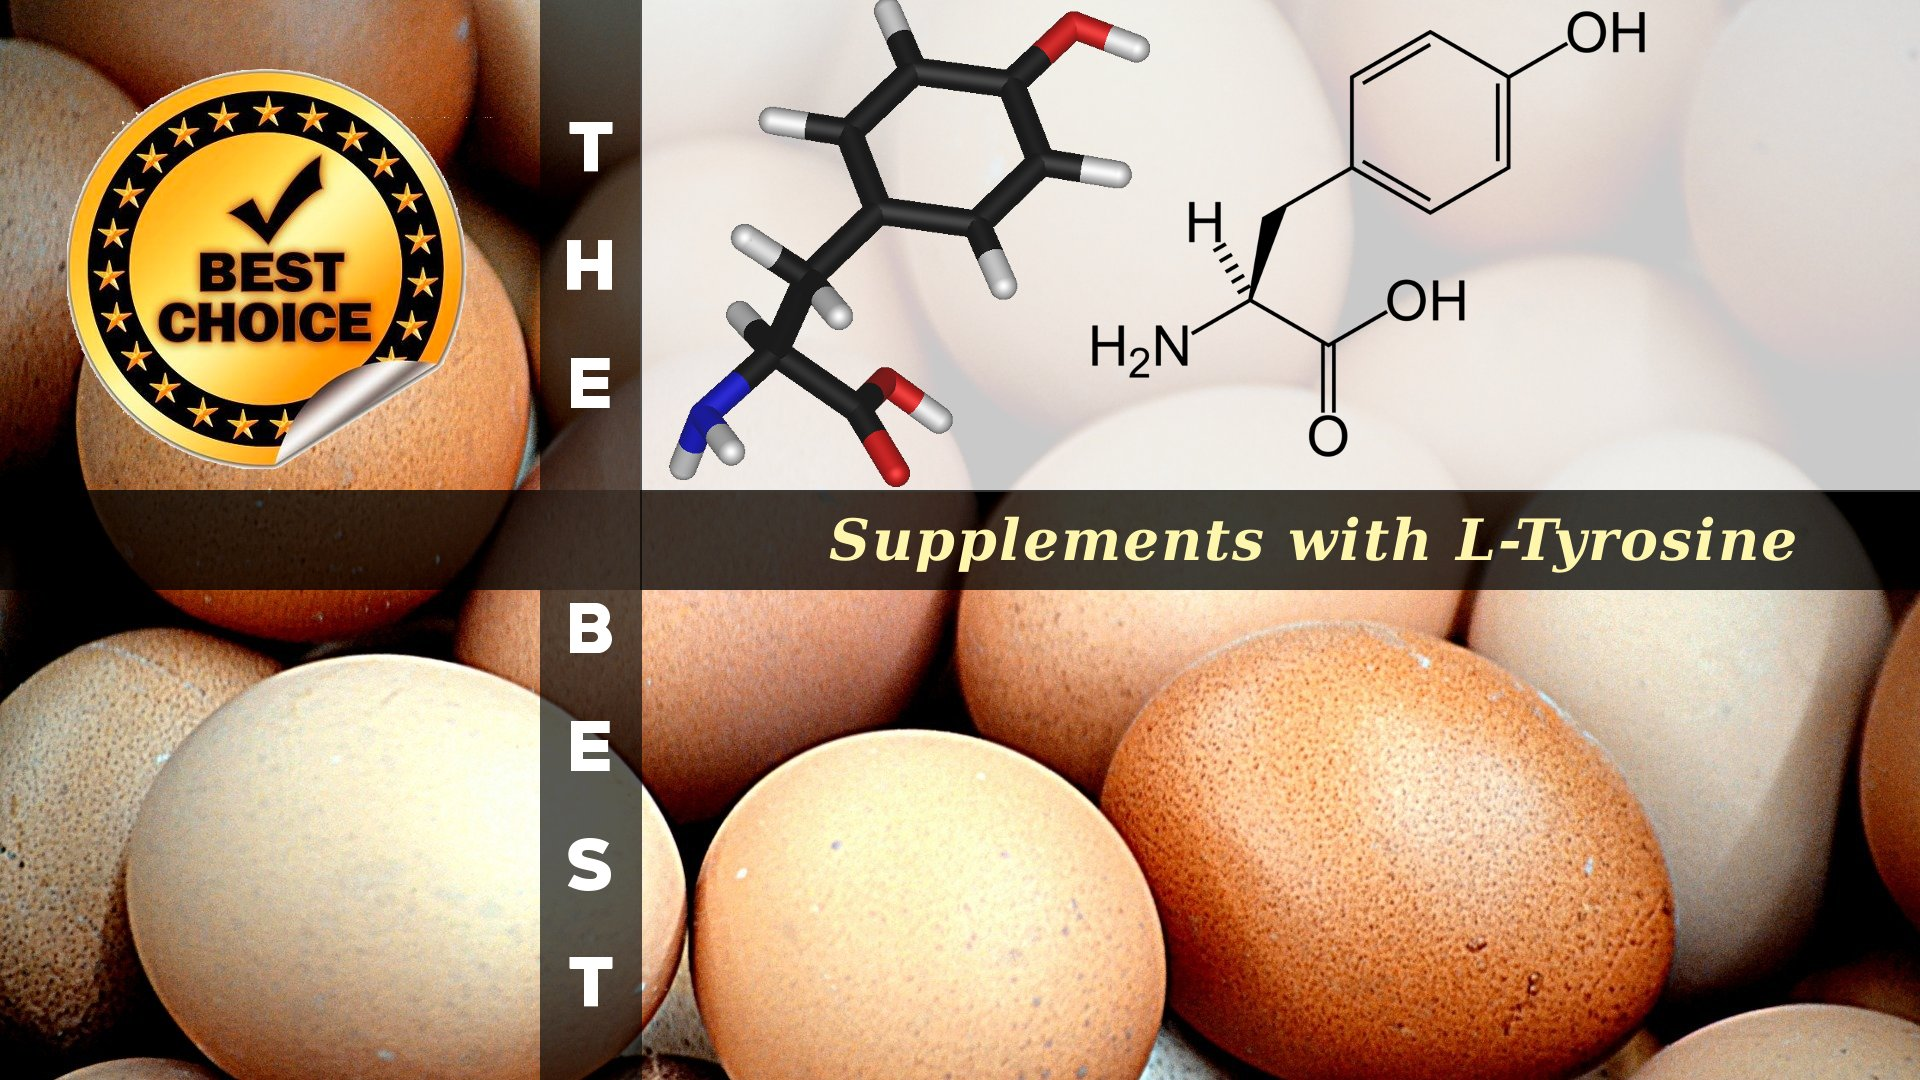 The Supplements with L-Tyrosine